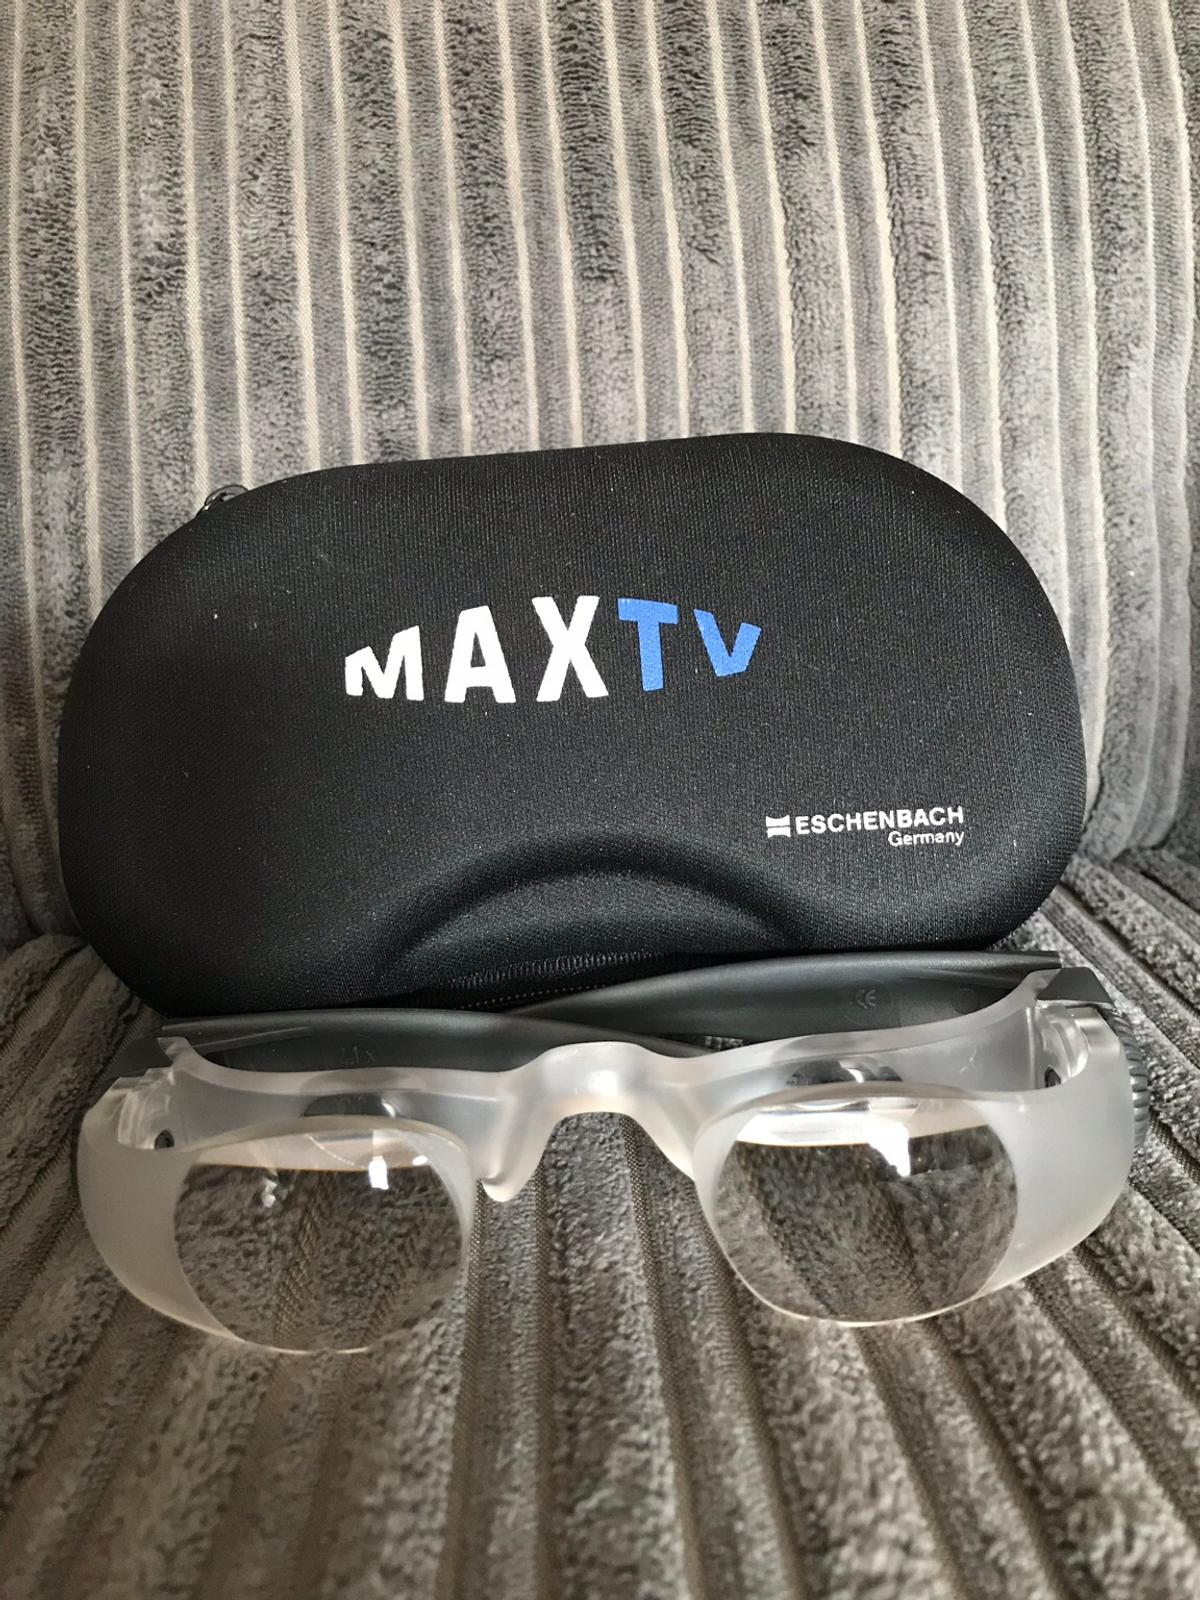 Max Tv Glasses Low Vision Aid Magnifying Glasses